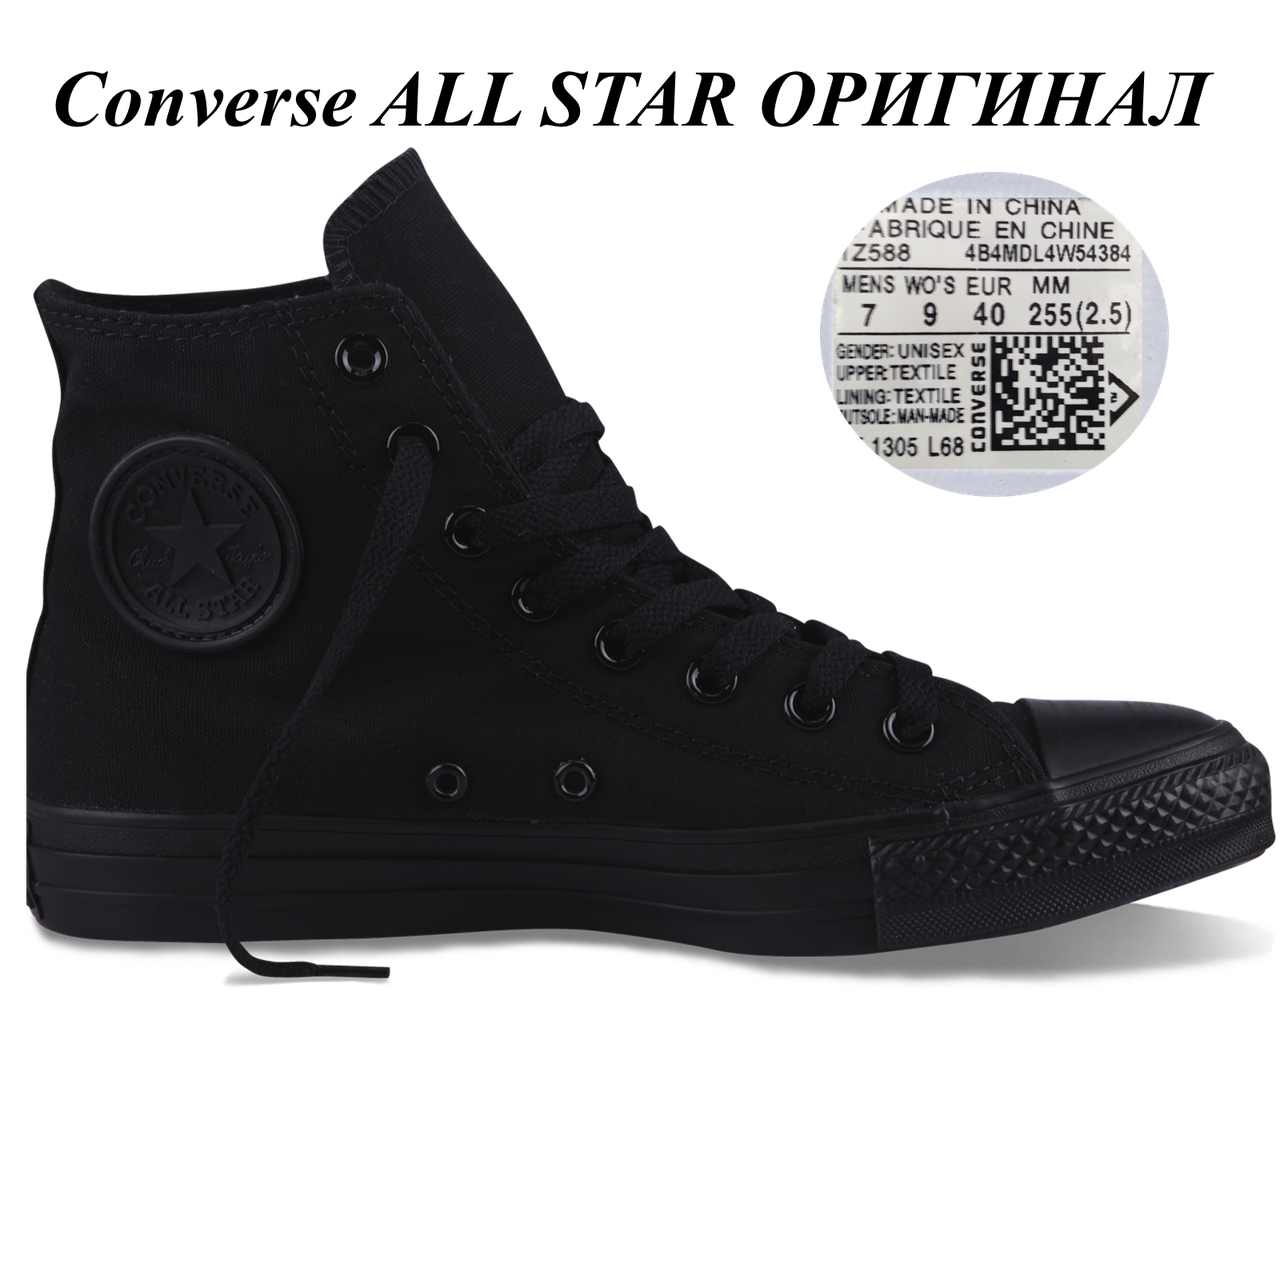 Оригинальные кеды Converse All Star Chuck Taylor, monochrome black